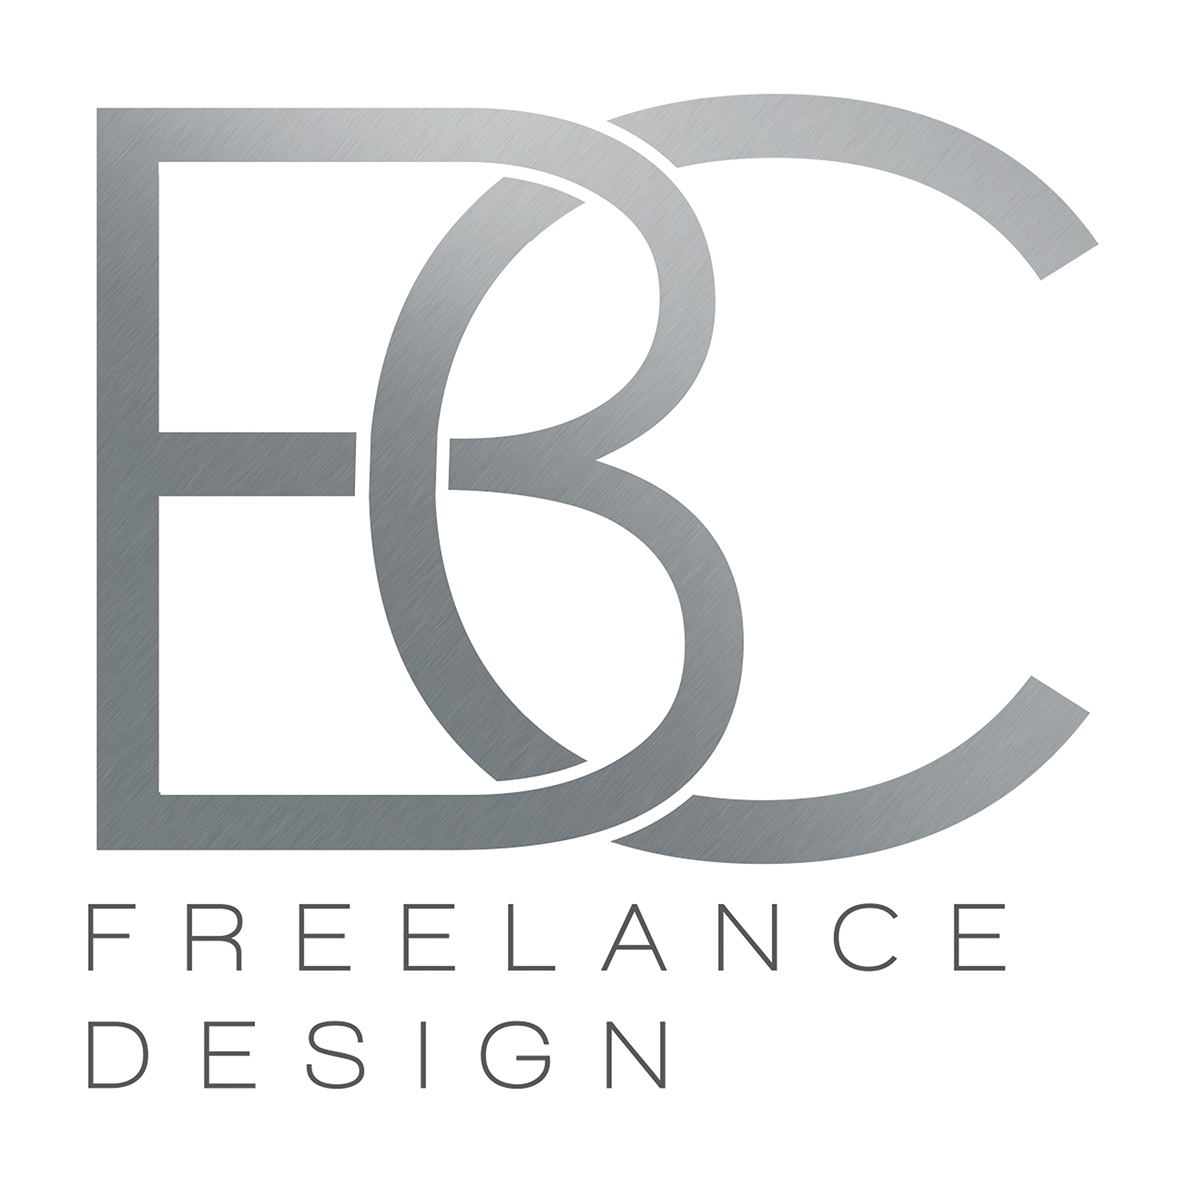 BC freelance design - Tourism Canberra